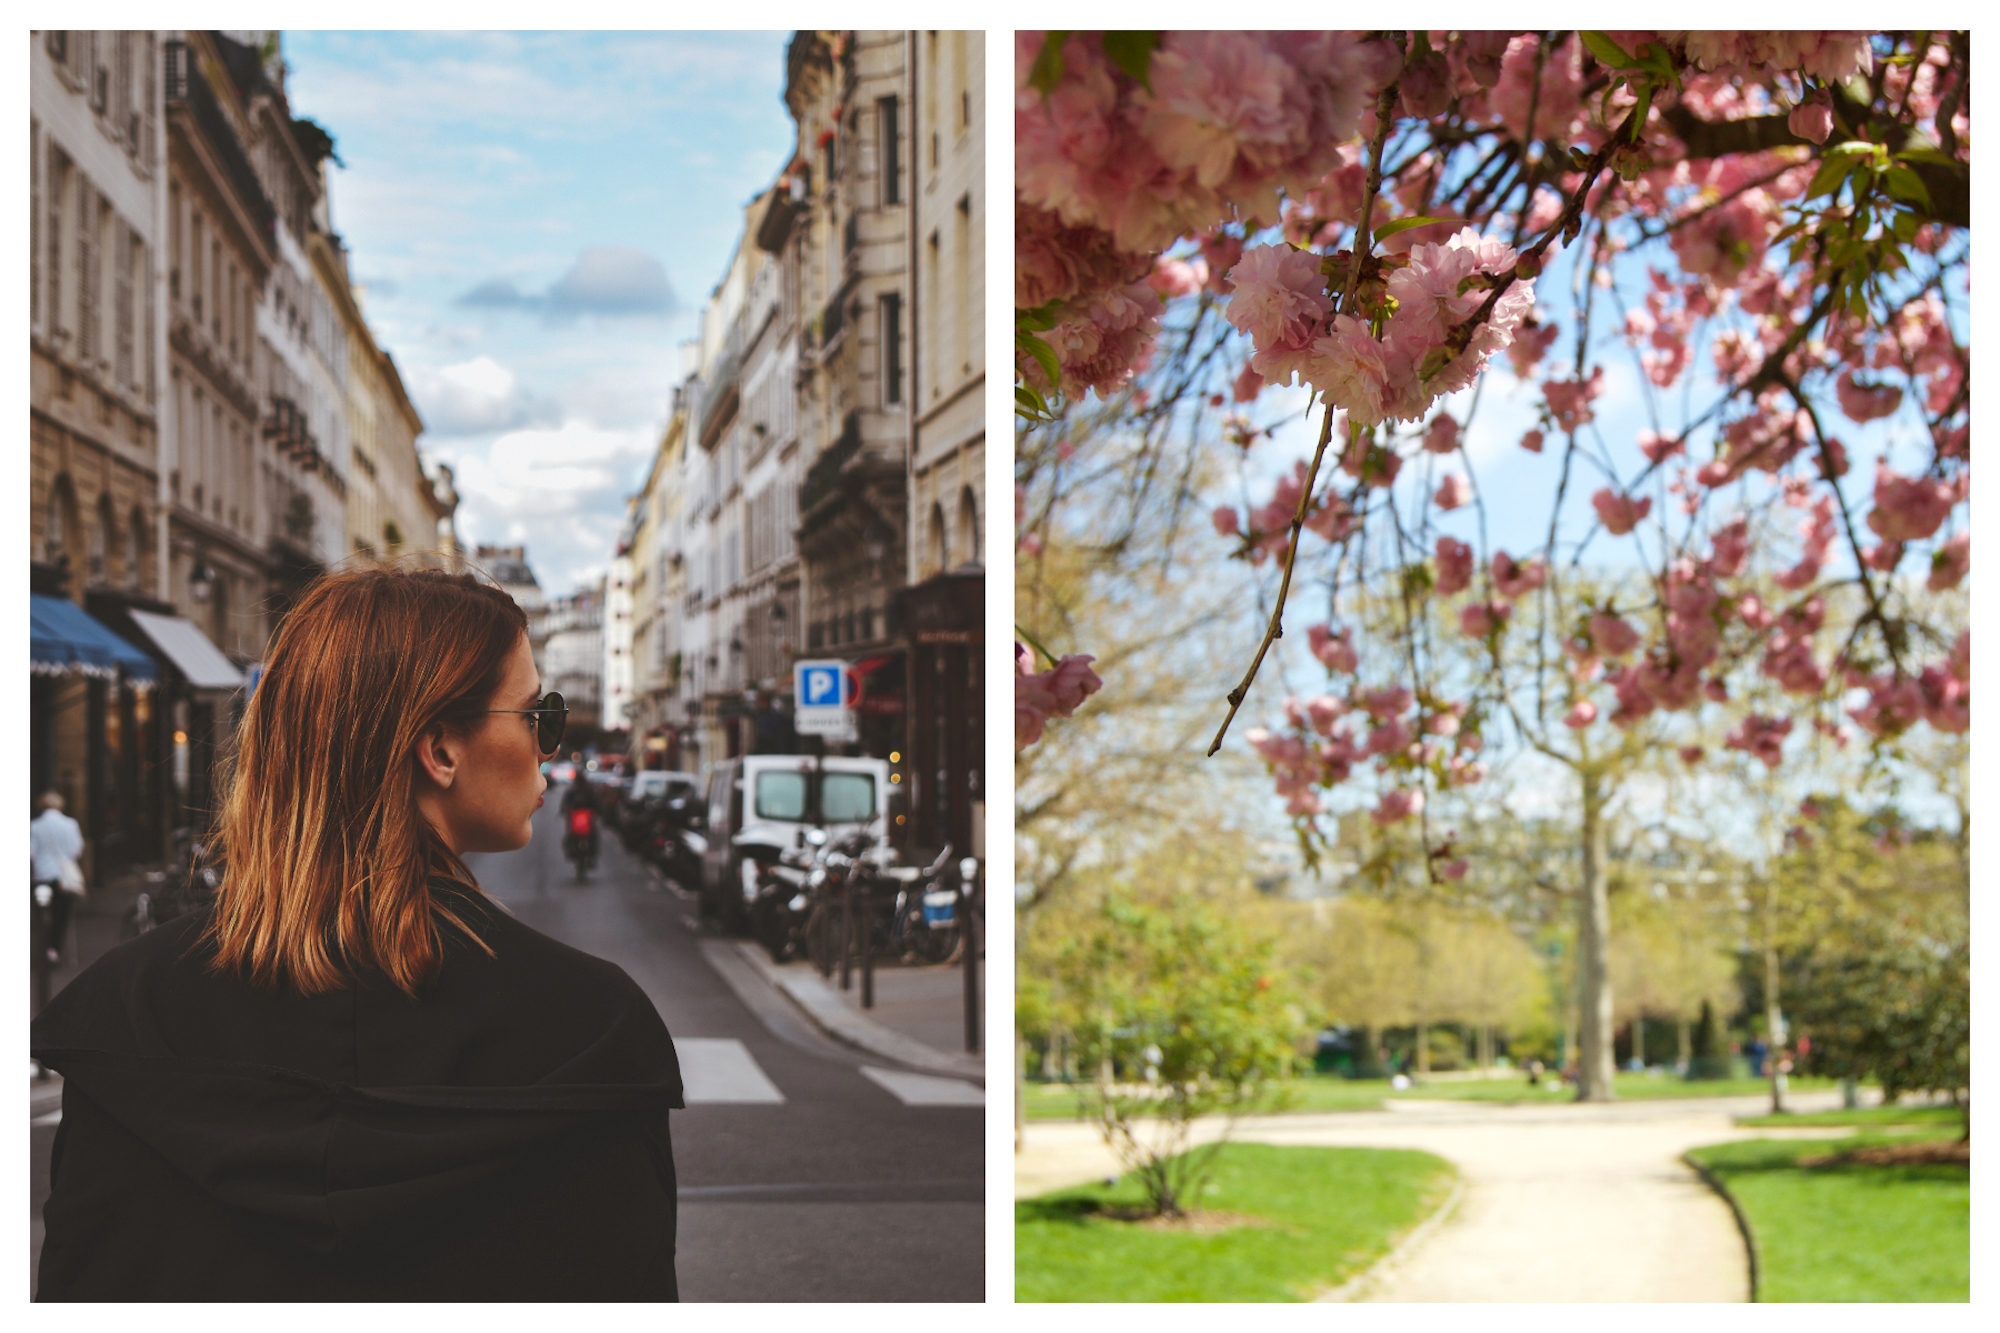 HiP Paris Blog uncovers the secret of the la bise. A blonde woman strolling in the streets of Paris (left). A sunny Paris park when the trees are in full bloom (right).